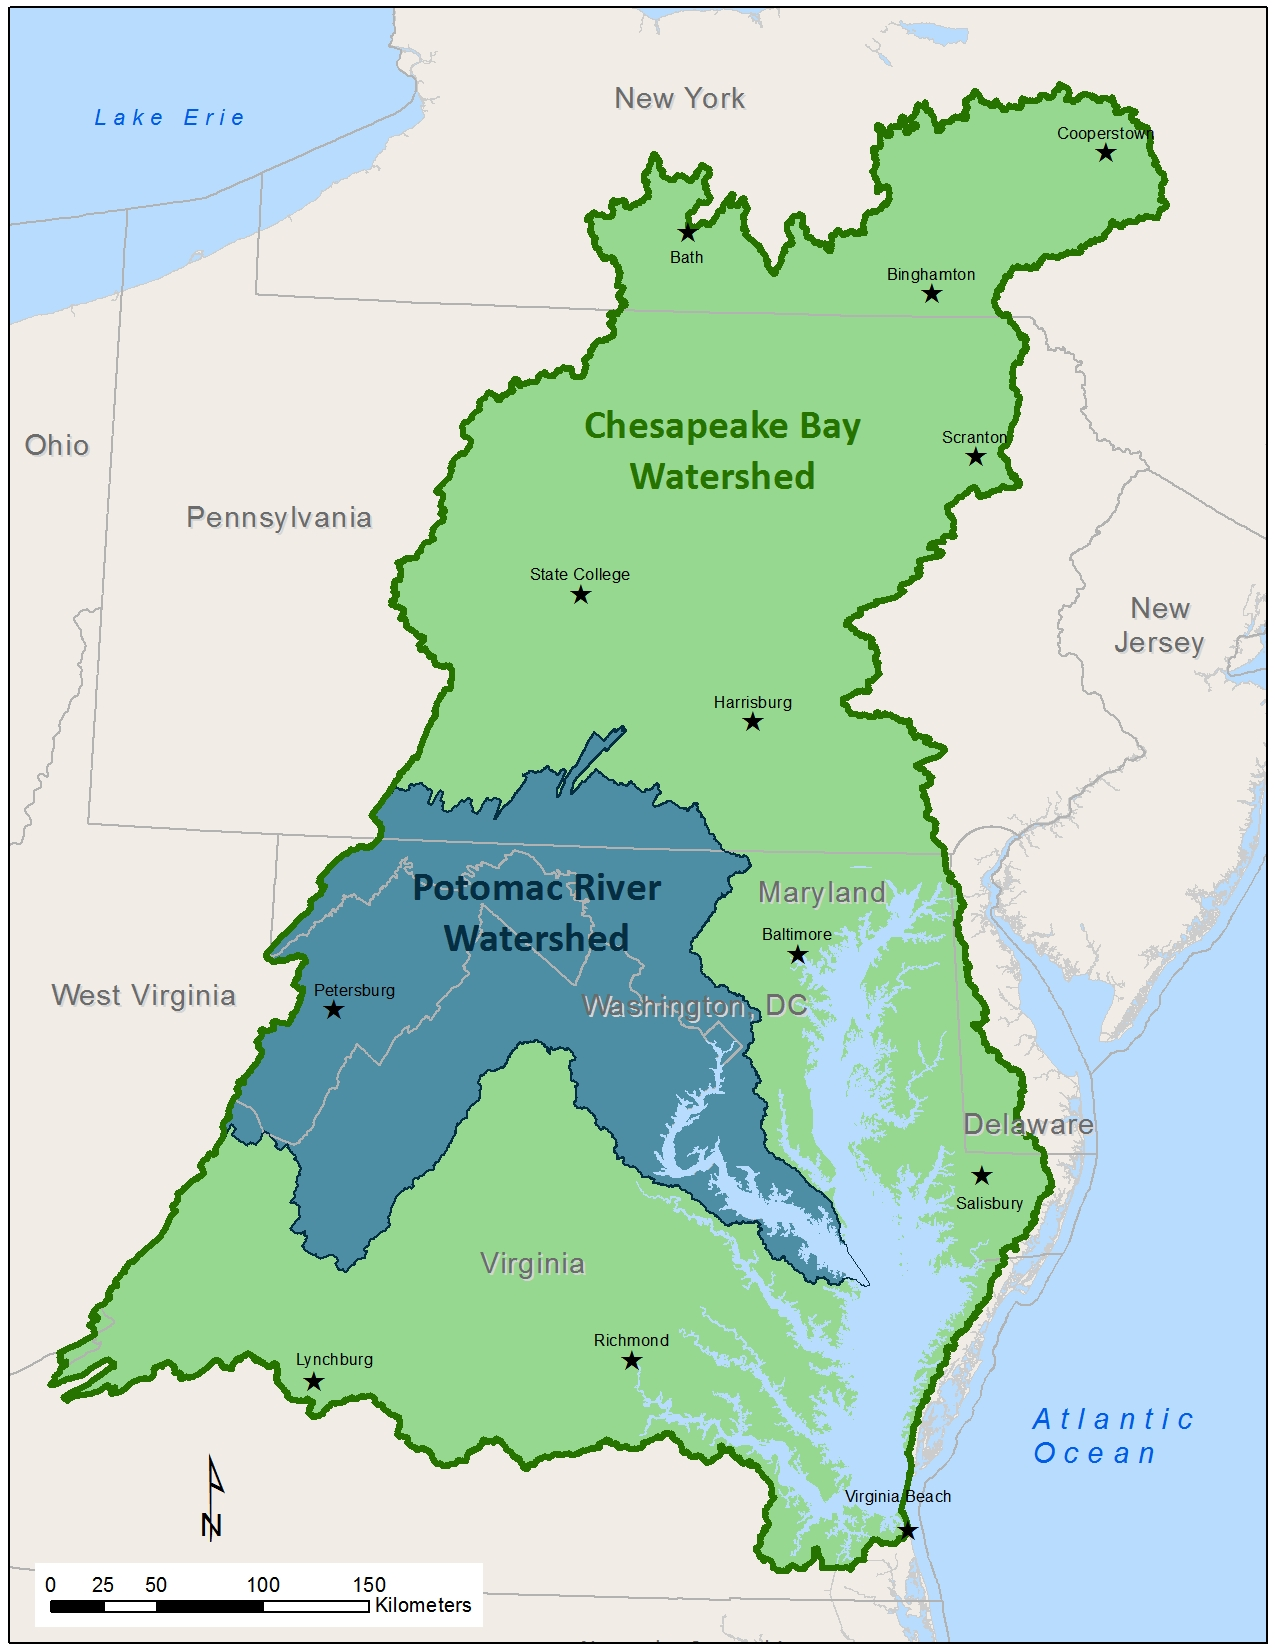 Potomac River Basin Atlas - Subwatersheds